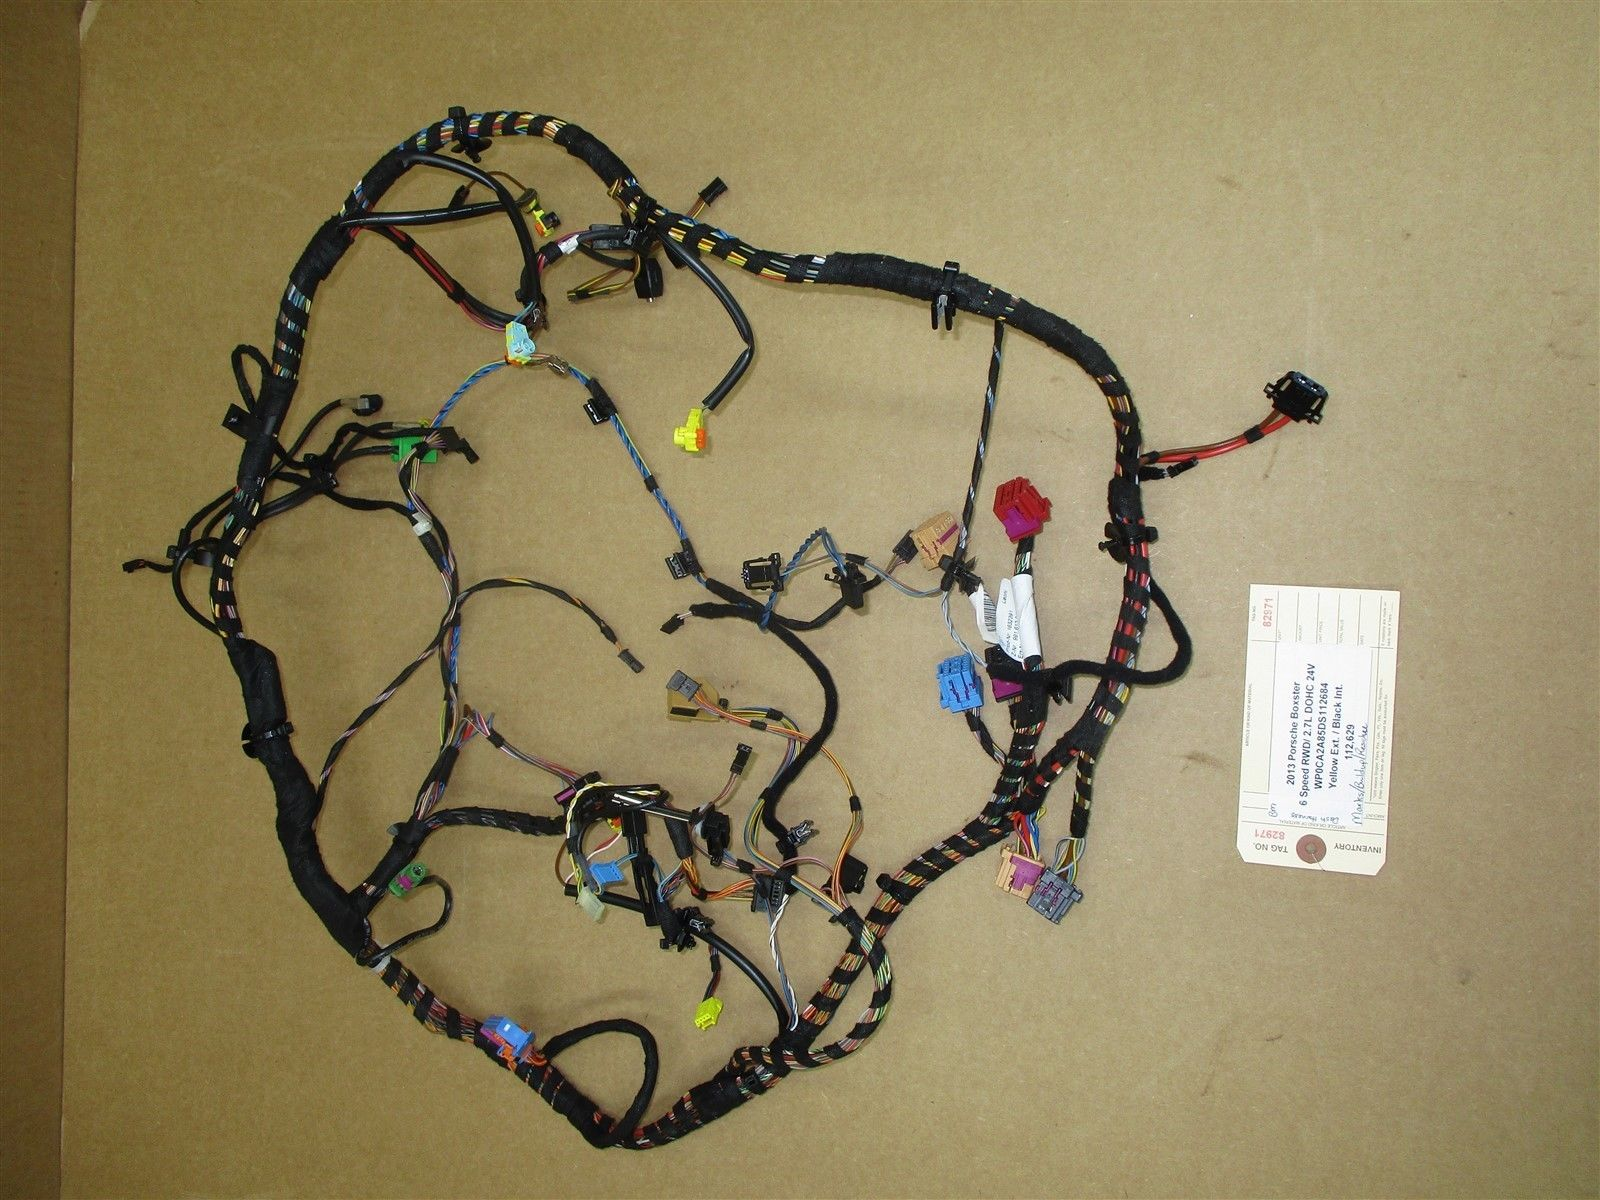 82971 A Wiring Harness Free Download Porsche Trailer 13 Boxster Rwd 981 Dash Wire 112629 Parts At